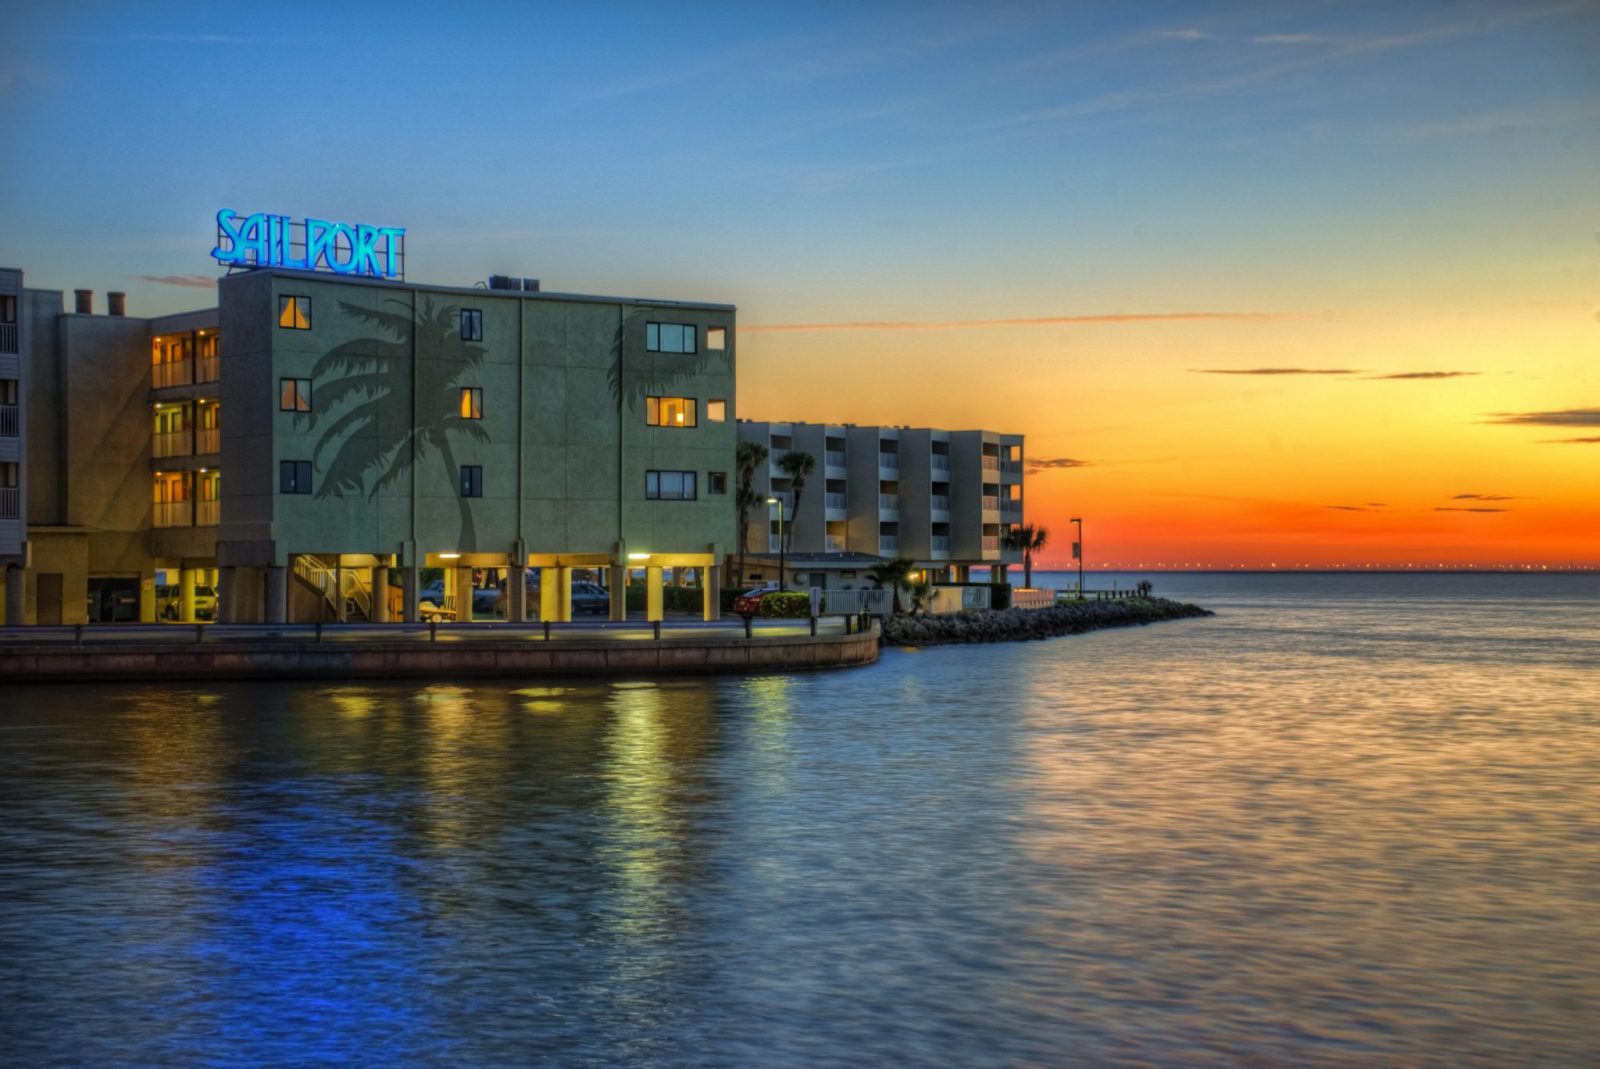 Sailport Waterfront Suites is a gay and lesbian friendly